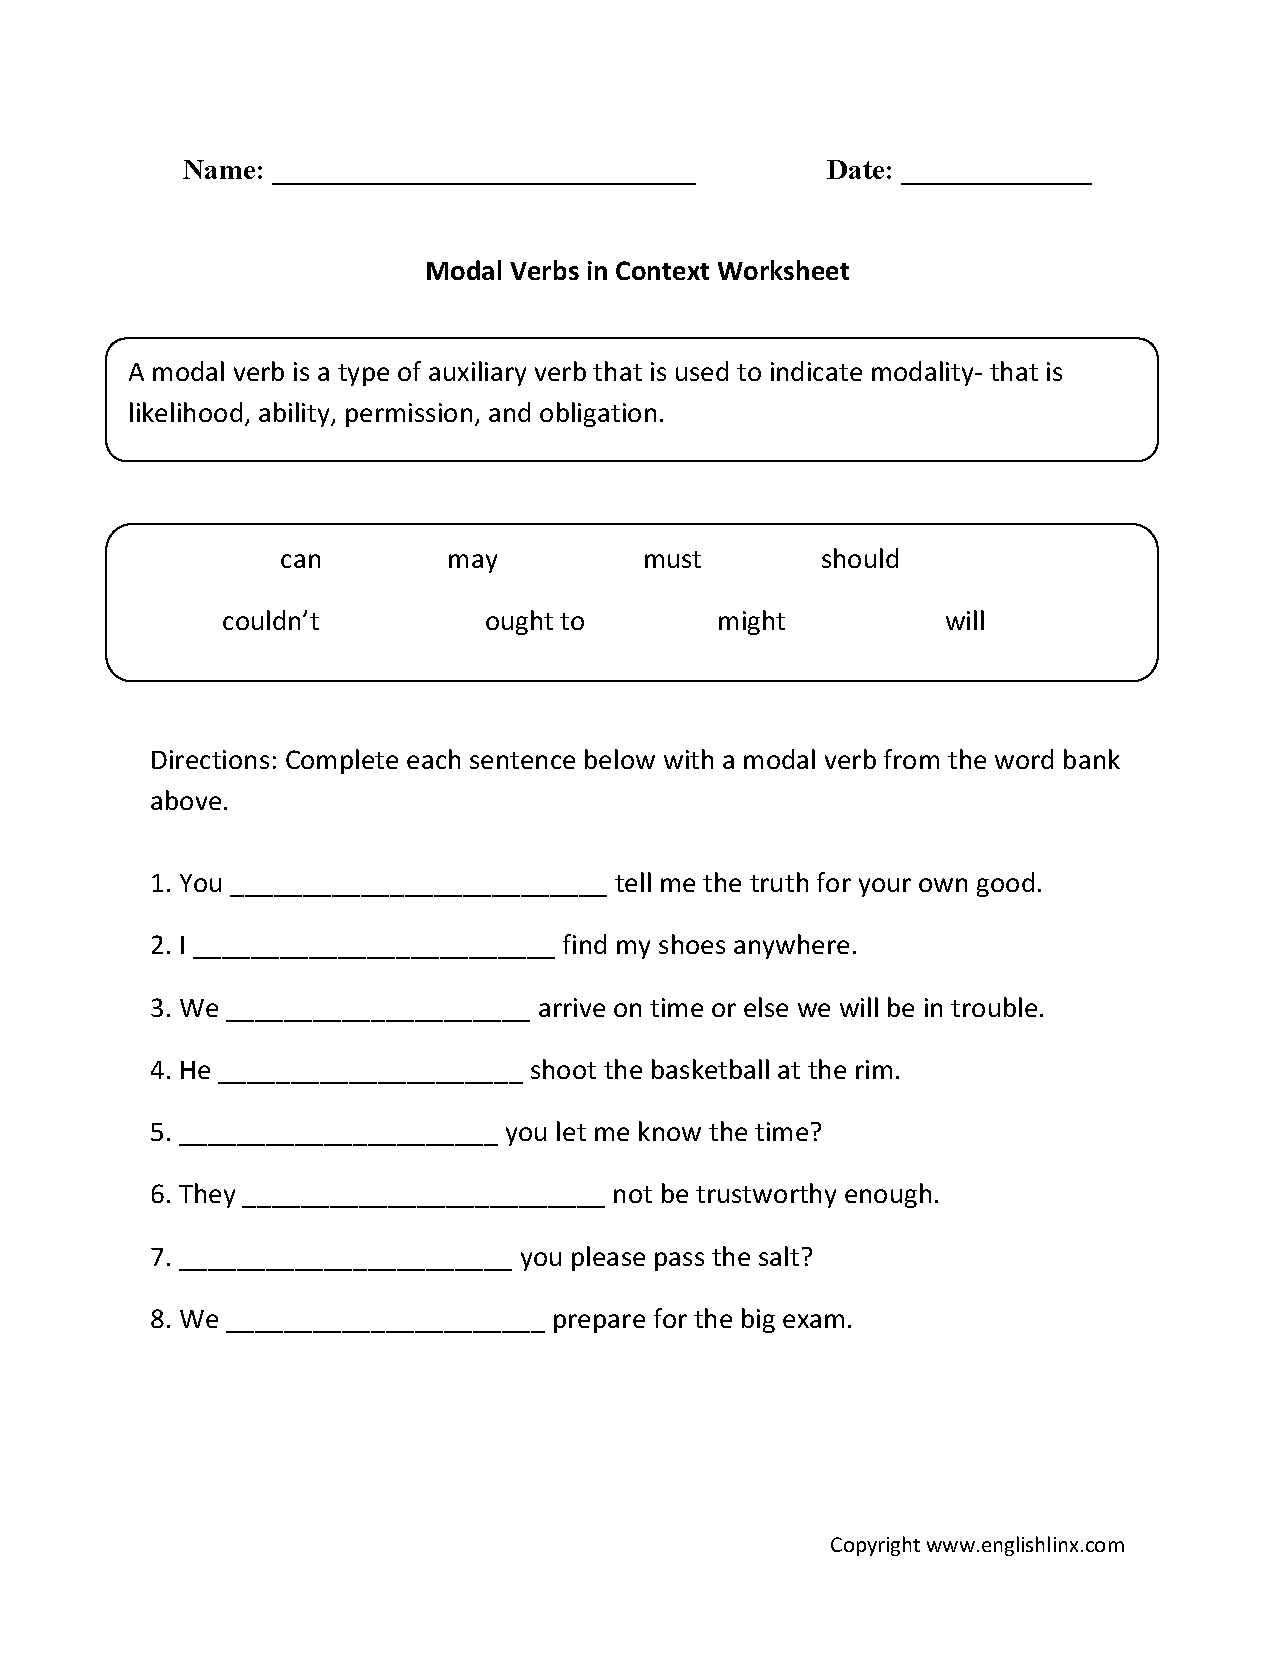 Worksheet Worksheets On Verbs For Grade 3 englishlinx com verbs worksheets modal worksheets